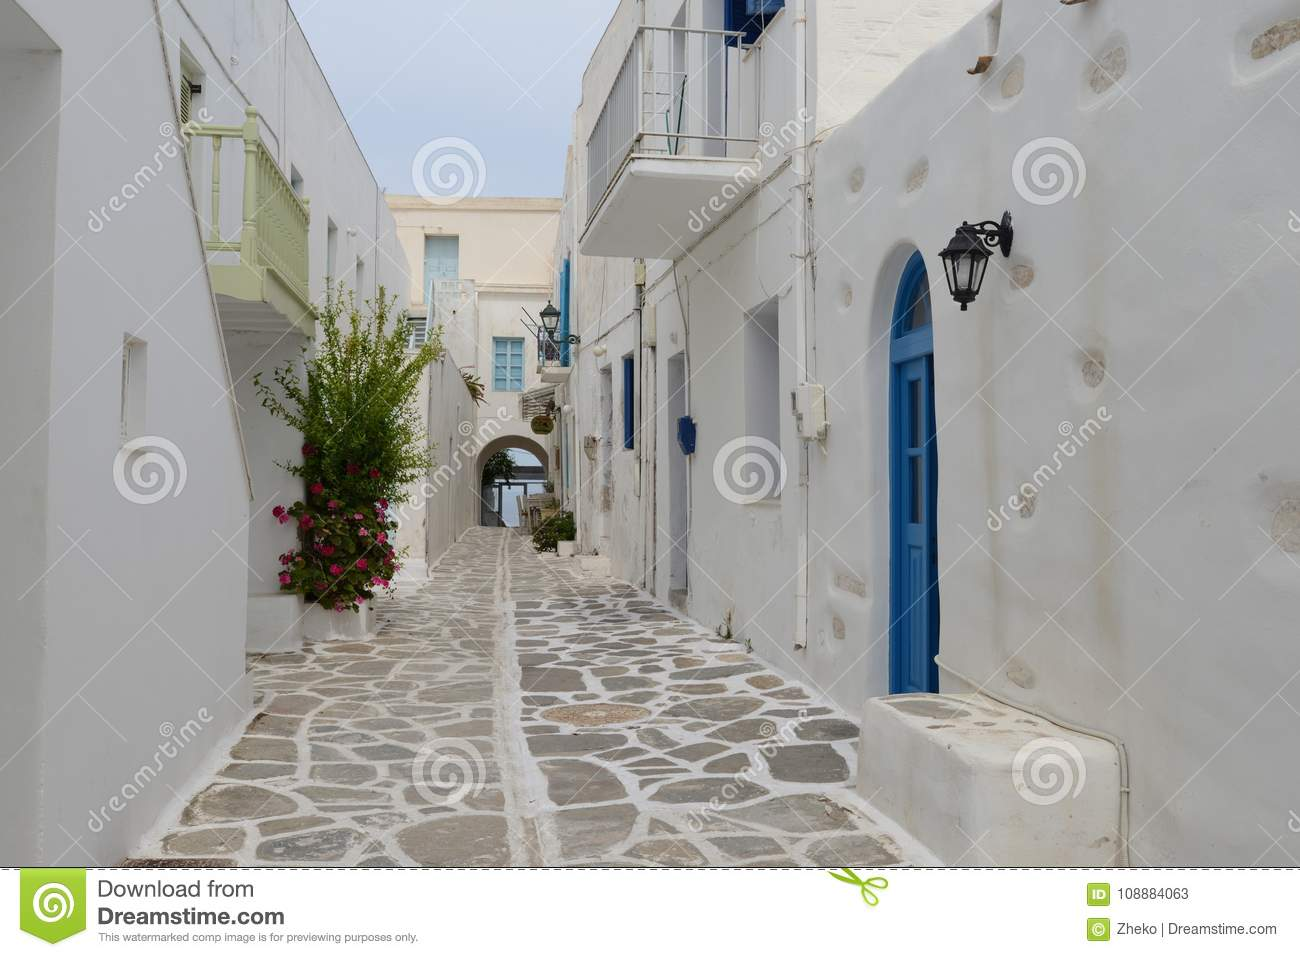 Mediterranean street with white houses and blue doors